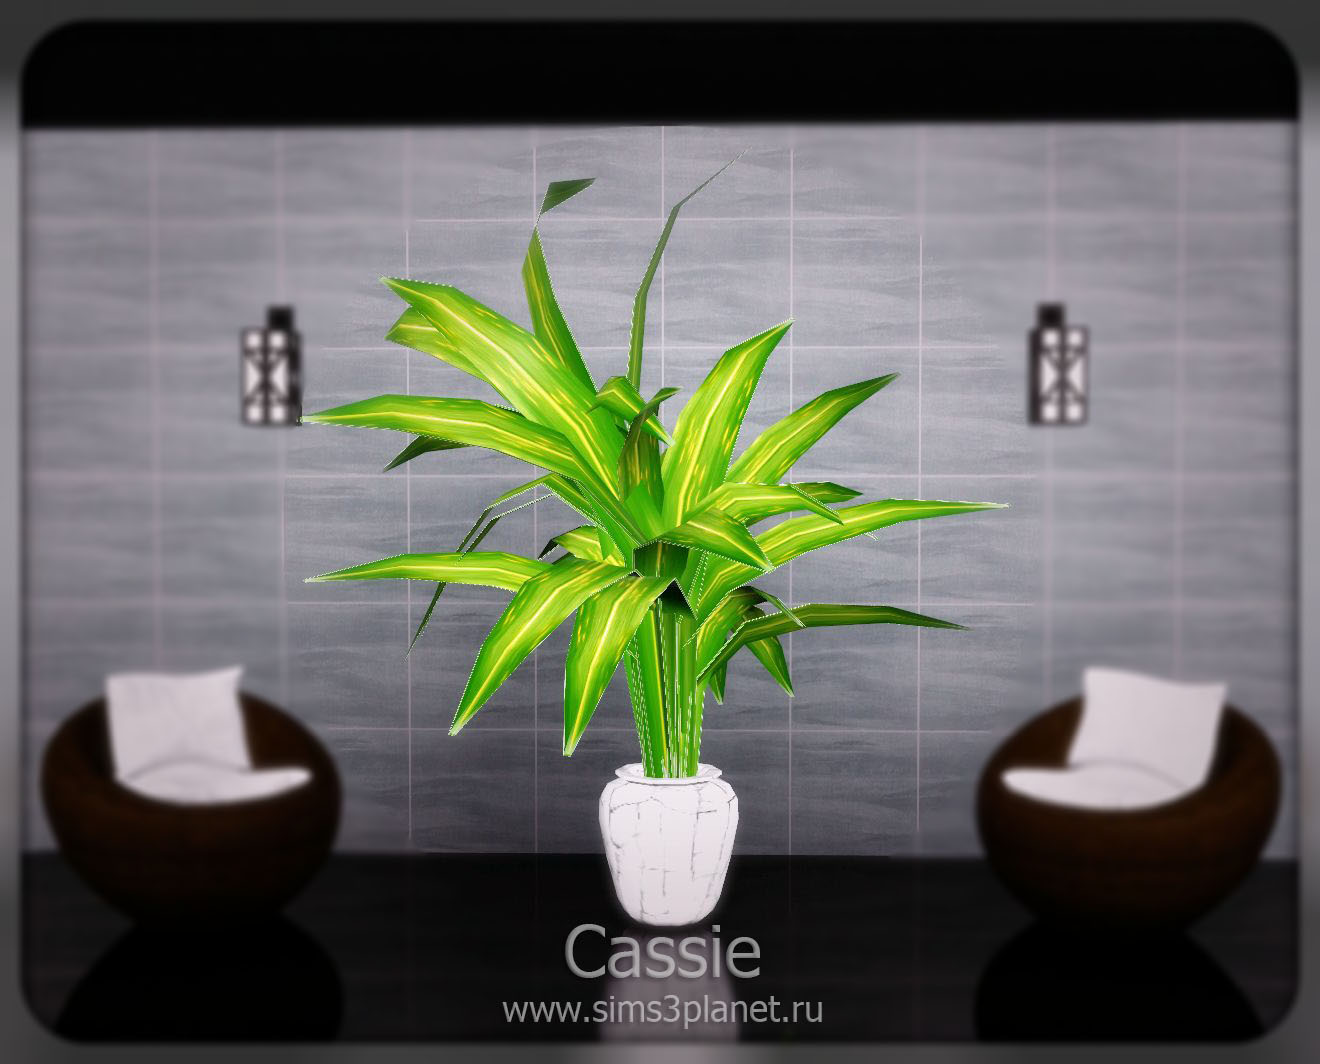 Big plant conversion by Cassie